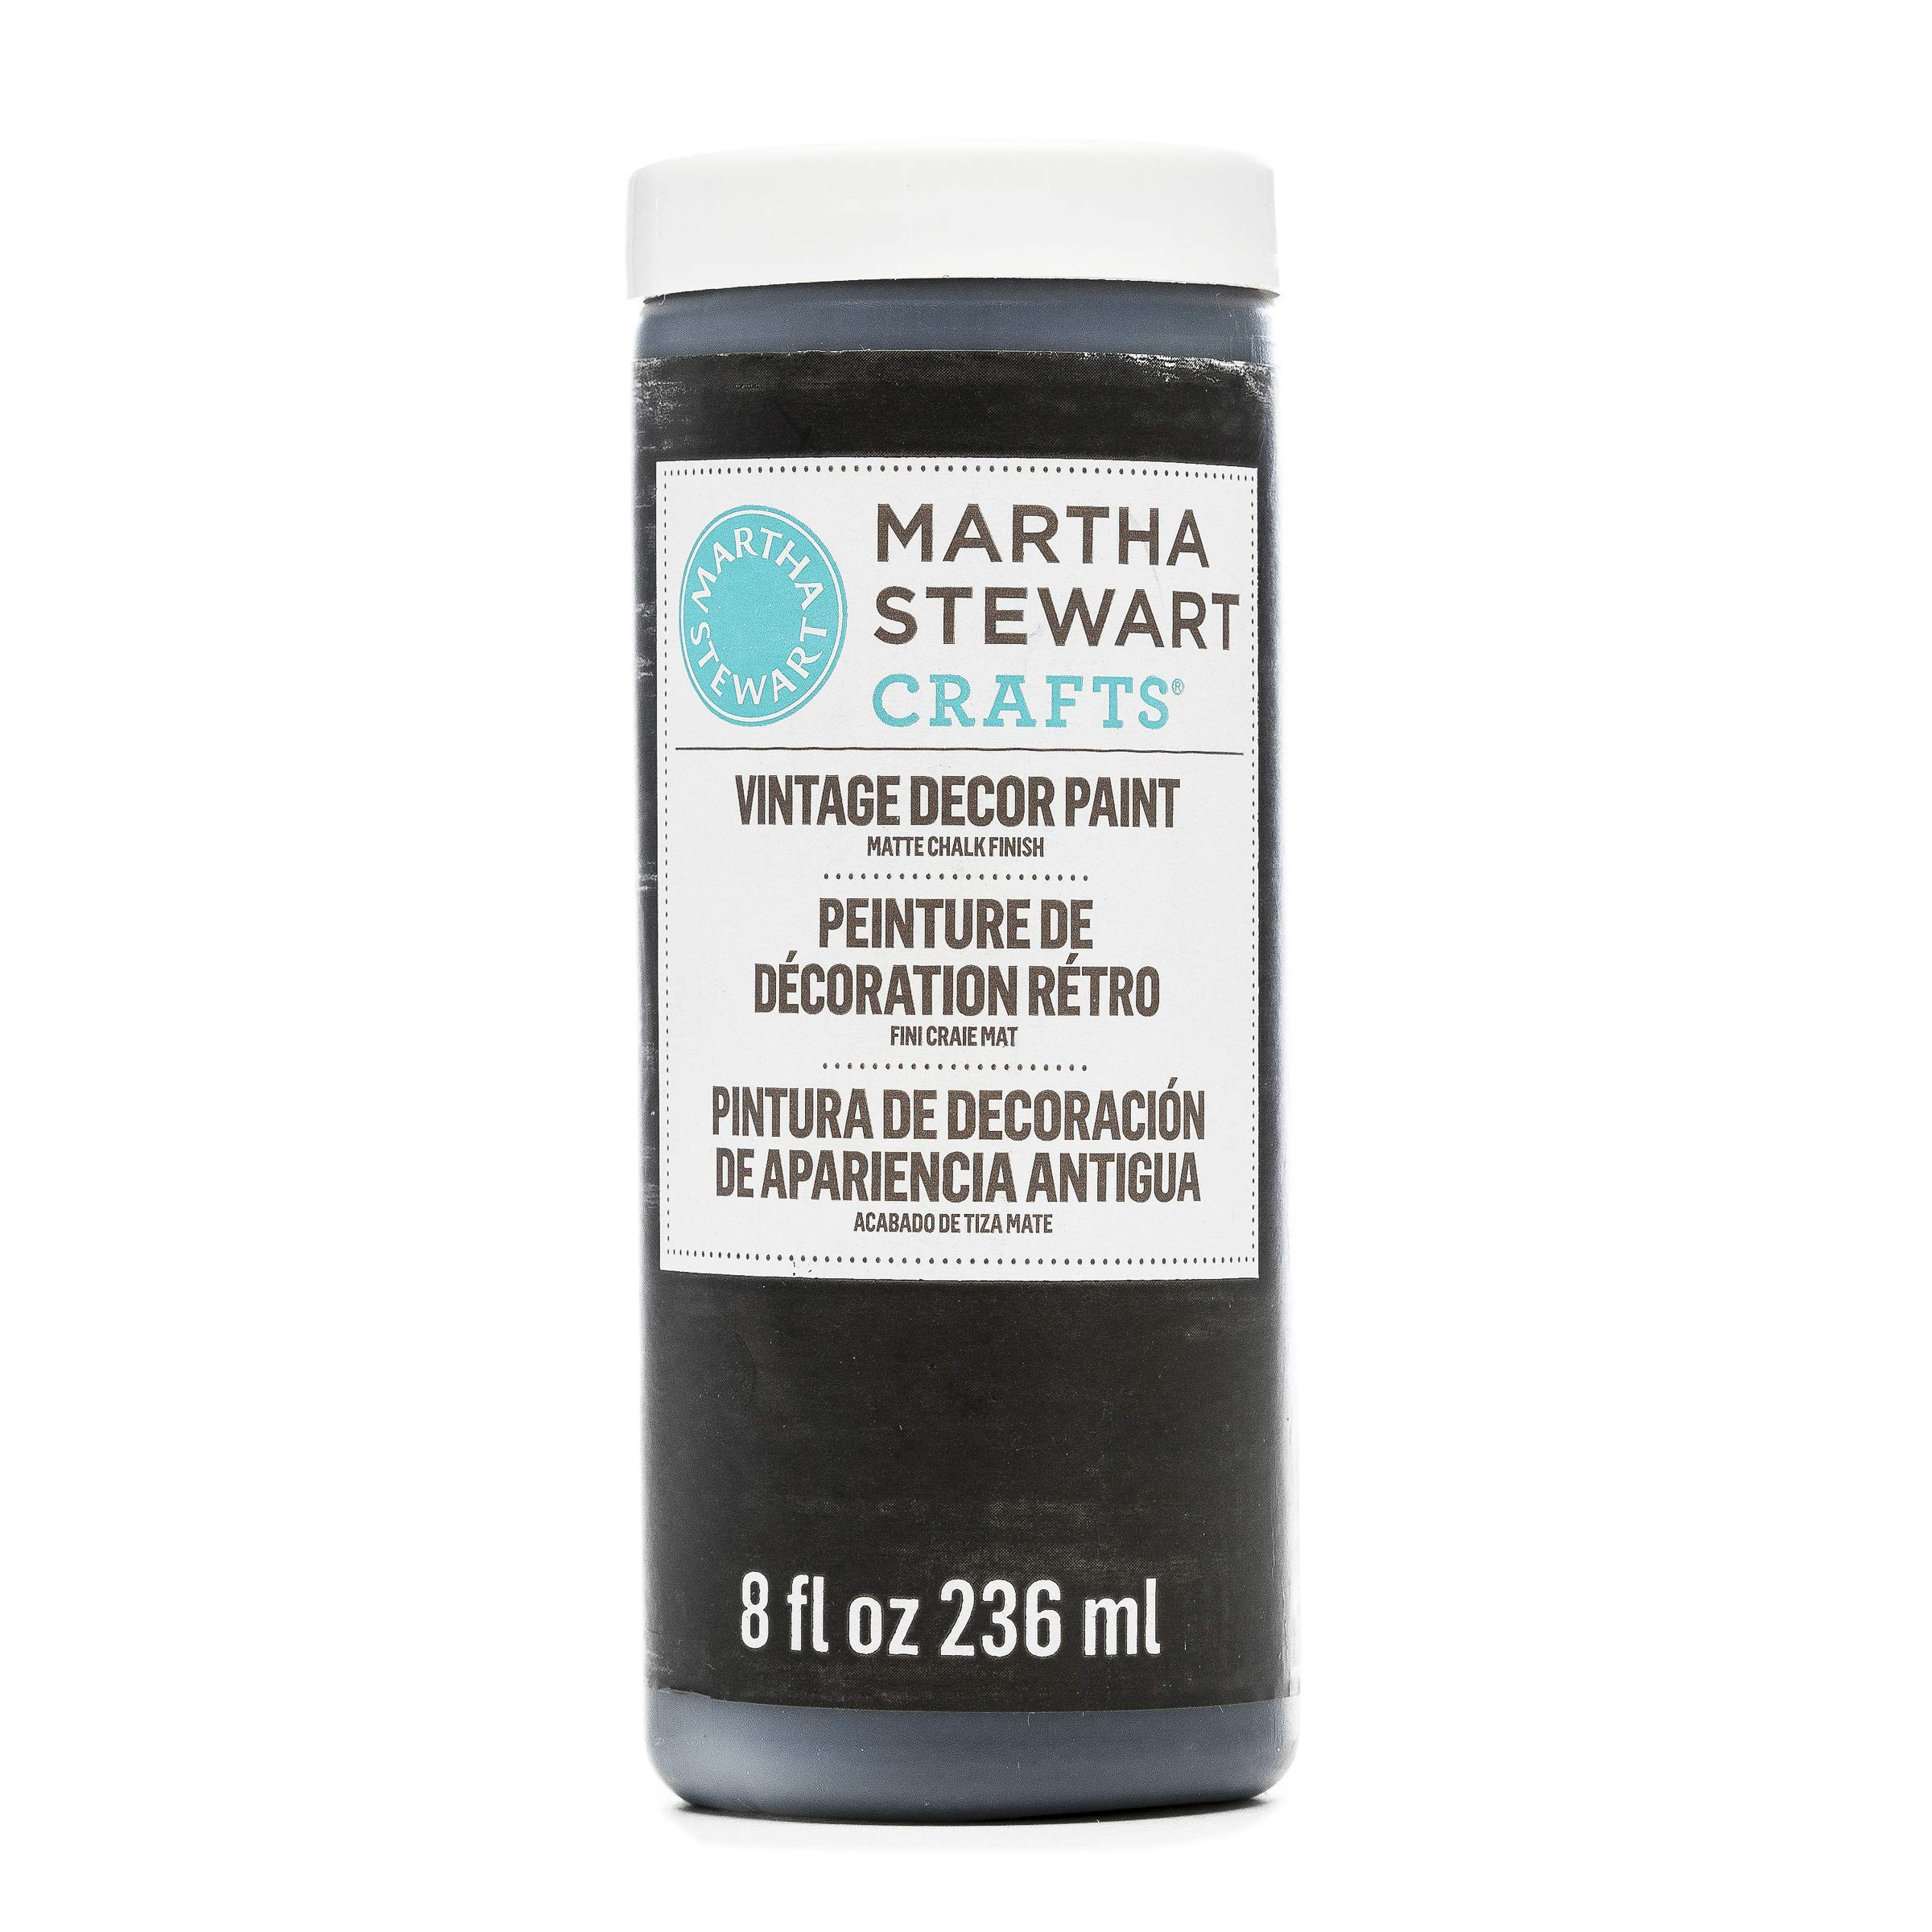 Martha Stewart Vintage Decor Matte Chalk Paint: Beetle Black, 8 oz